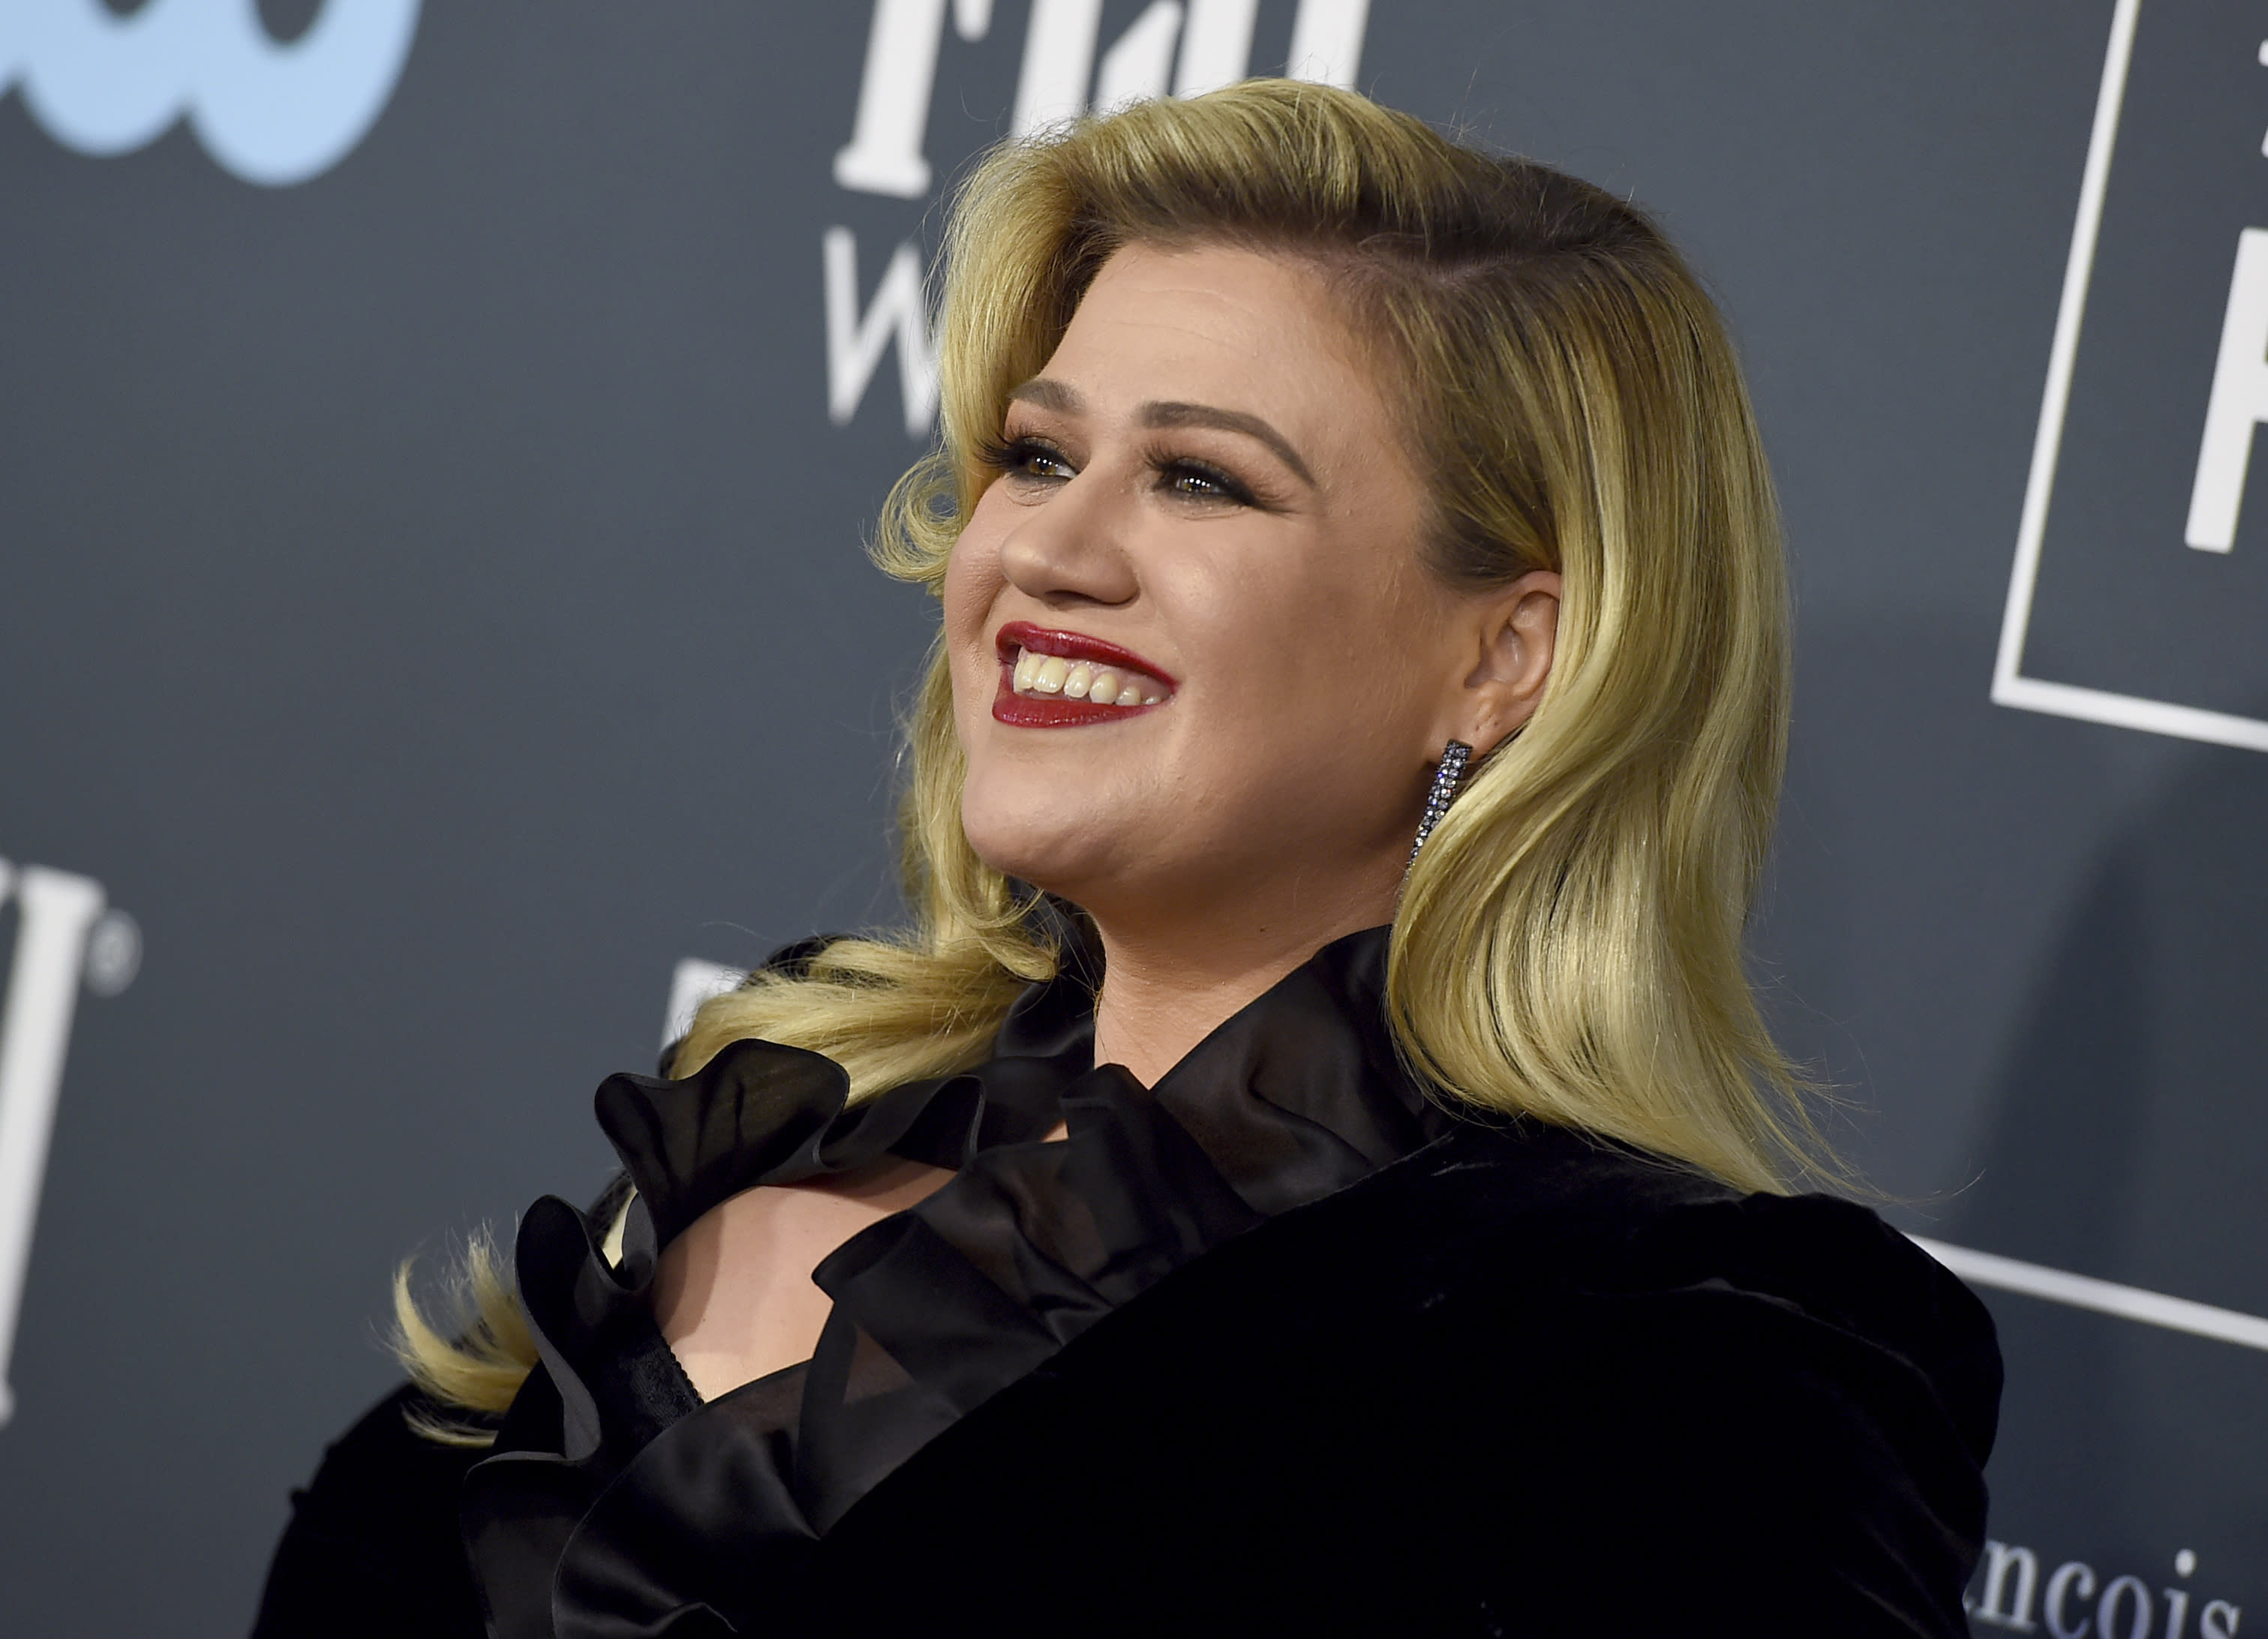 Does Kelly Clarkson Need To Become A Full-Time America's Got Talent Judge?